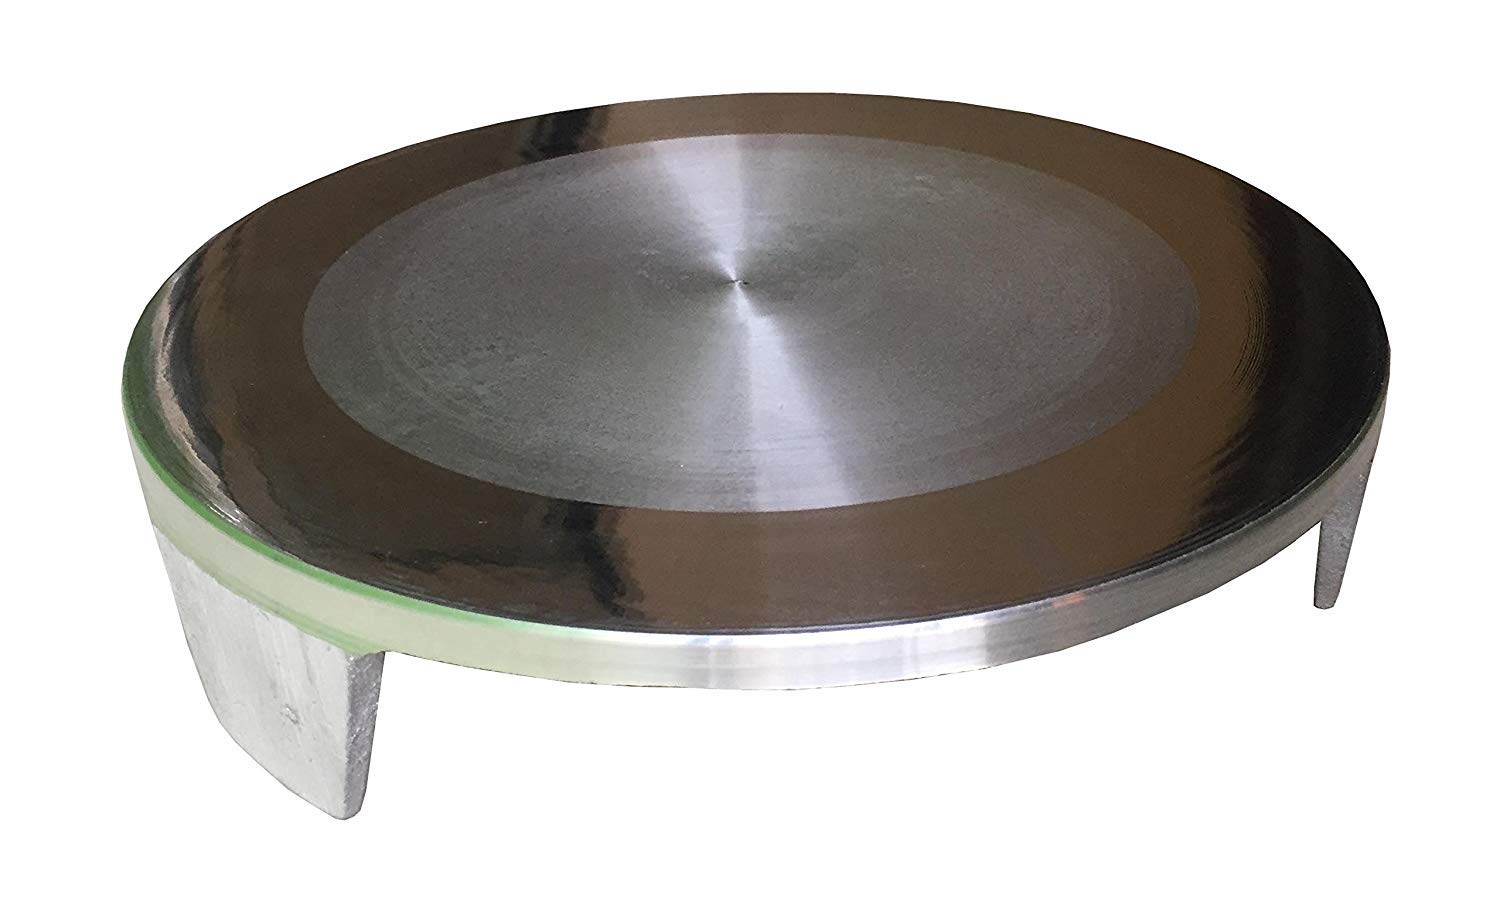 Aluminium Circular Rolling Board/Chakla/Polpat (Silver),1 Quantity by Satre Online And Marketing (Image #1)